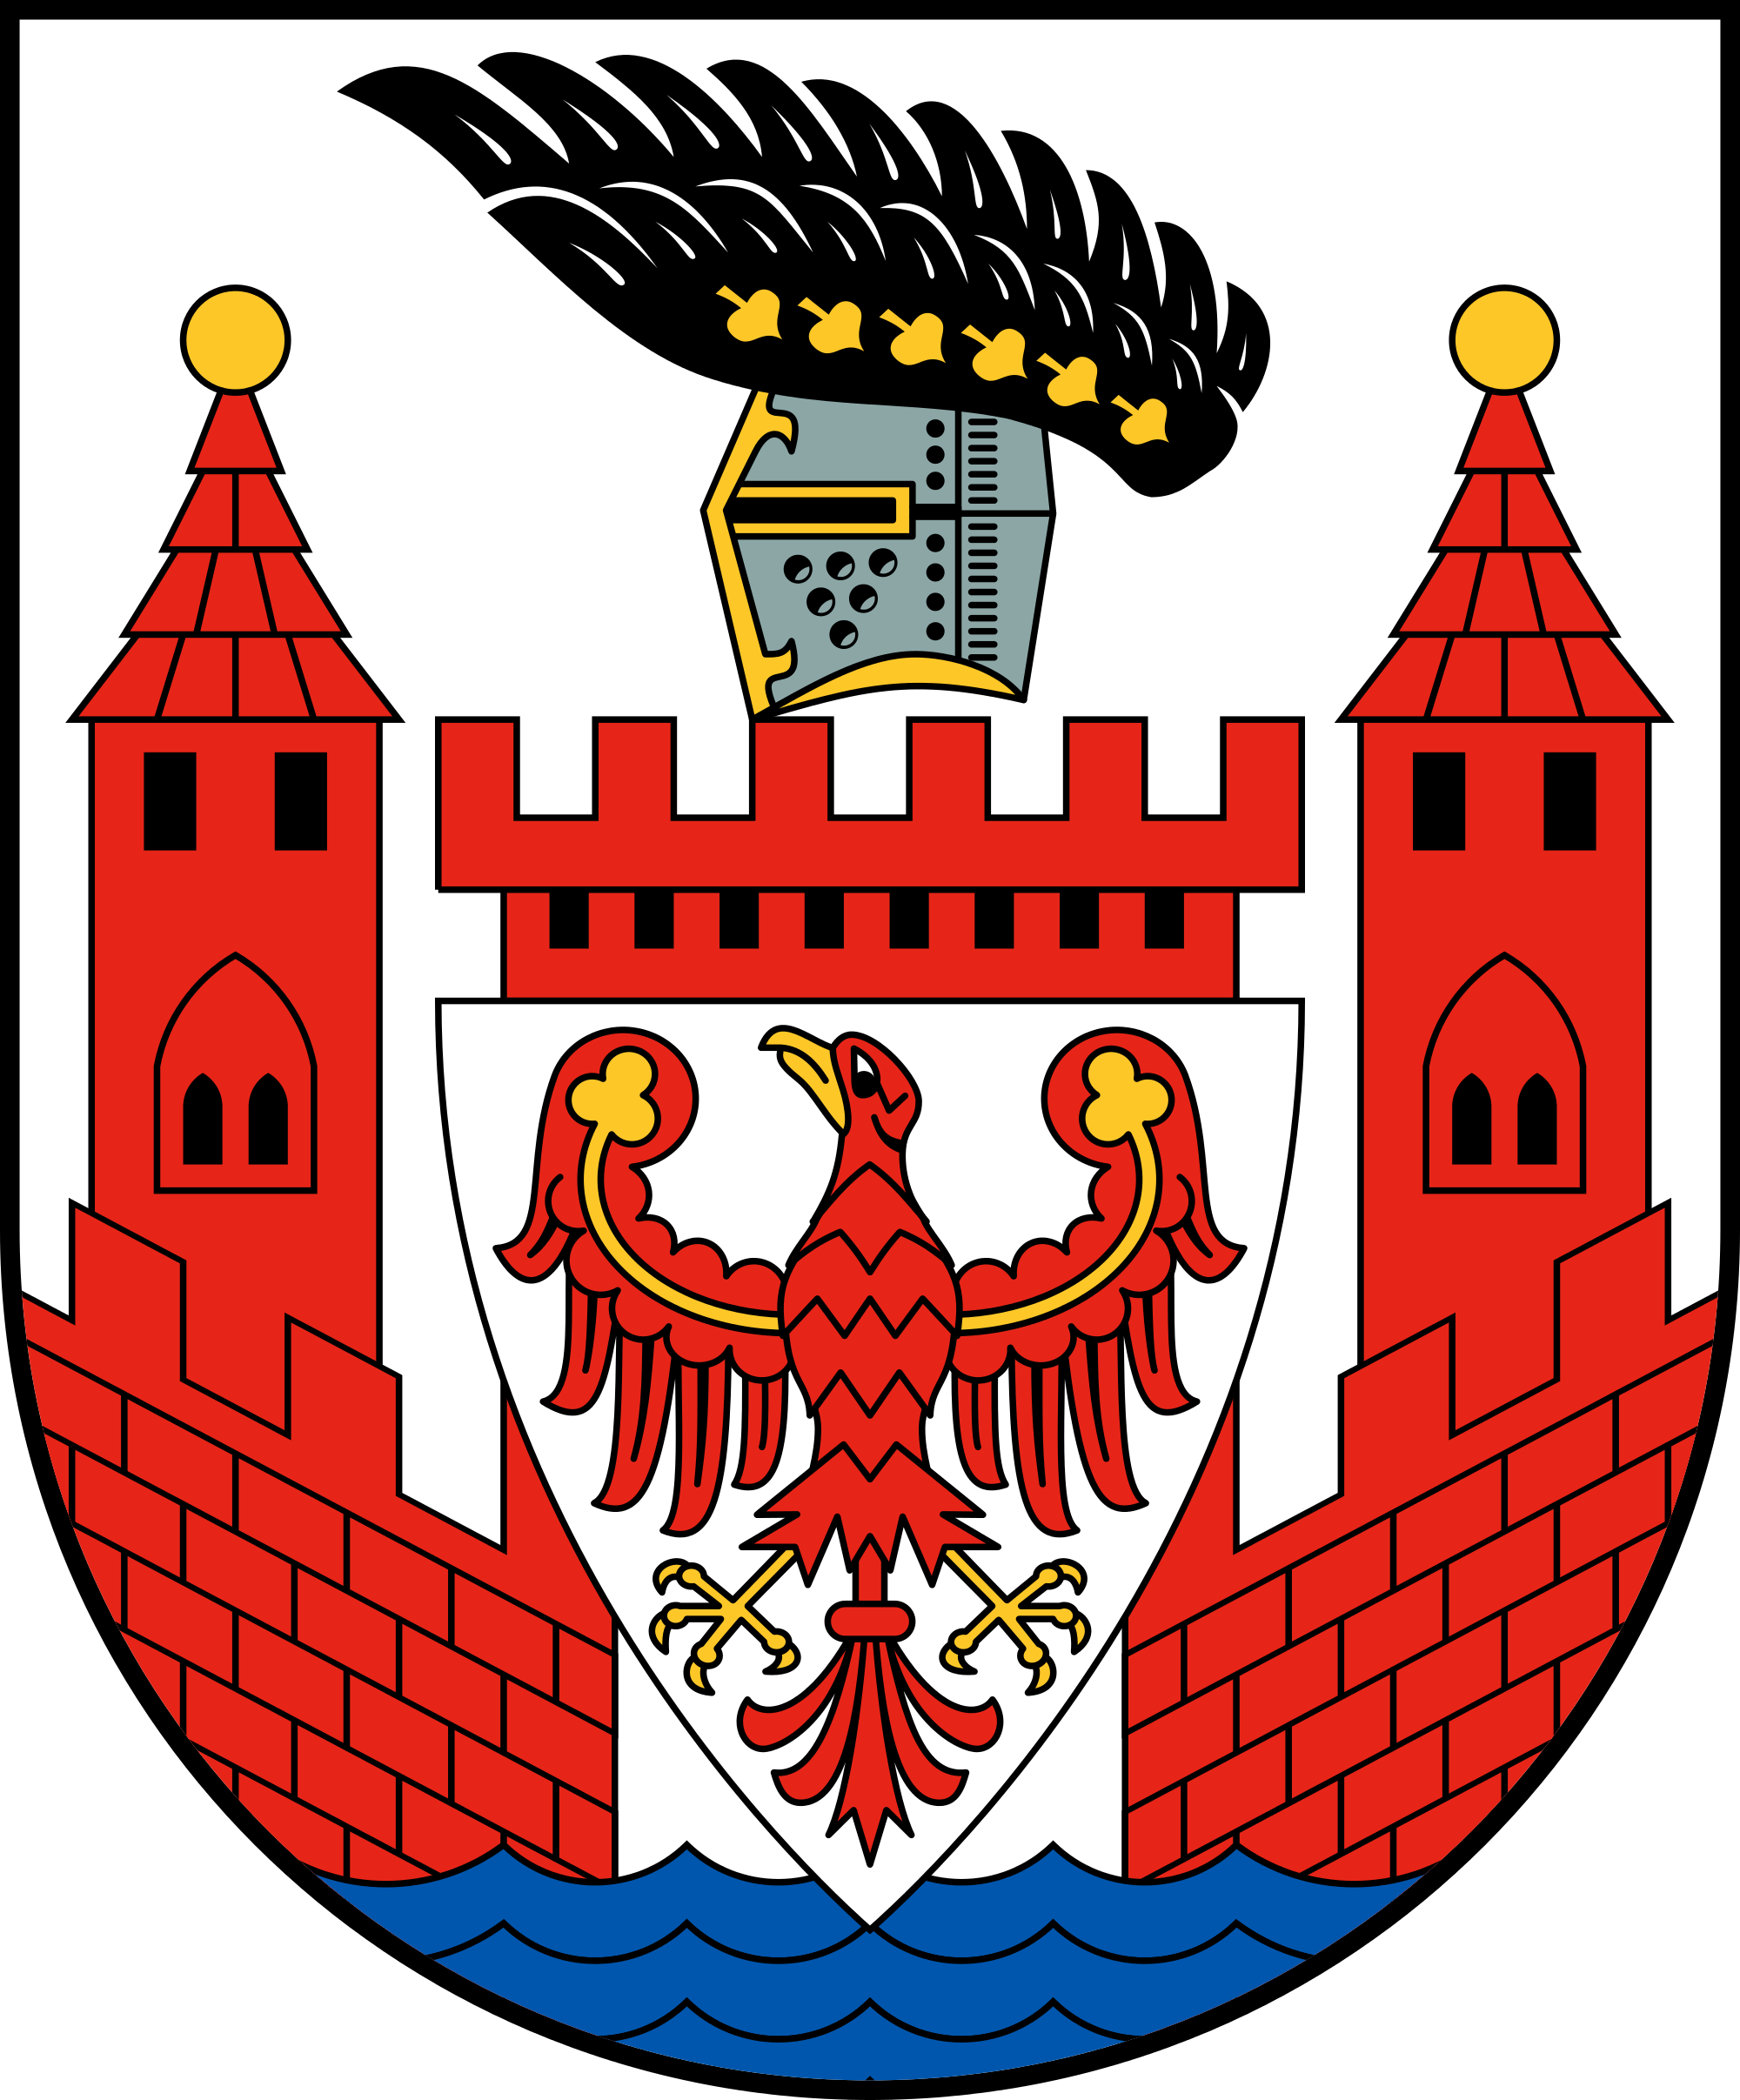 File:Emblem of borough Spandau.svg.